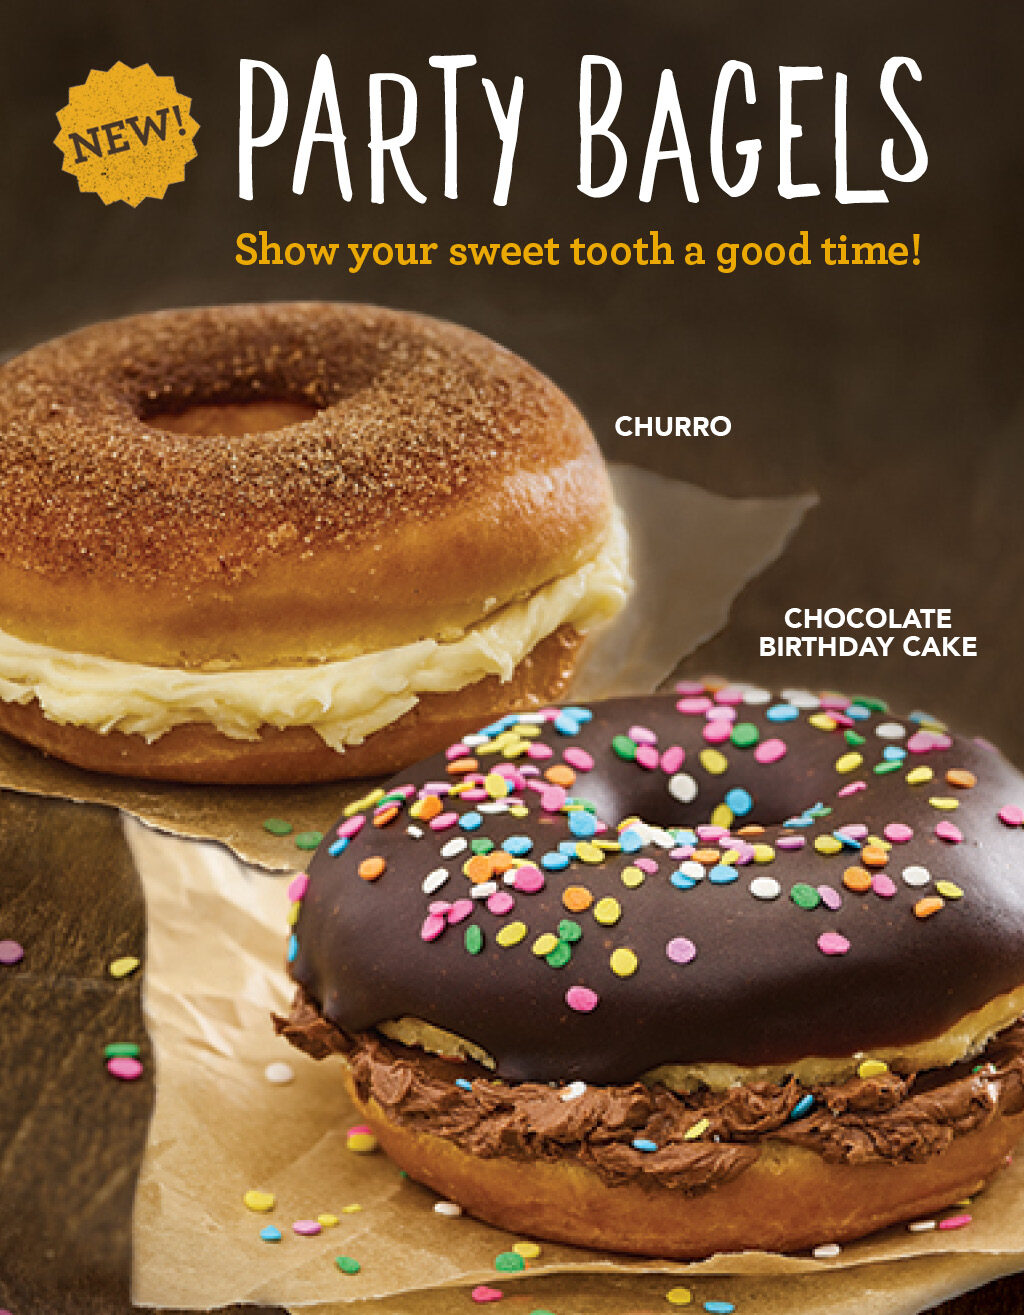 ROTATING SLIDER: Try our new Party Bagels! 2 Flavors: Chocolate Birthday Cake or Churro!